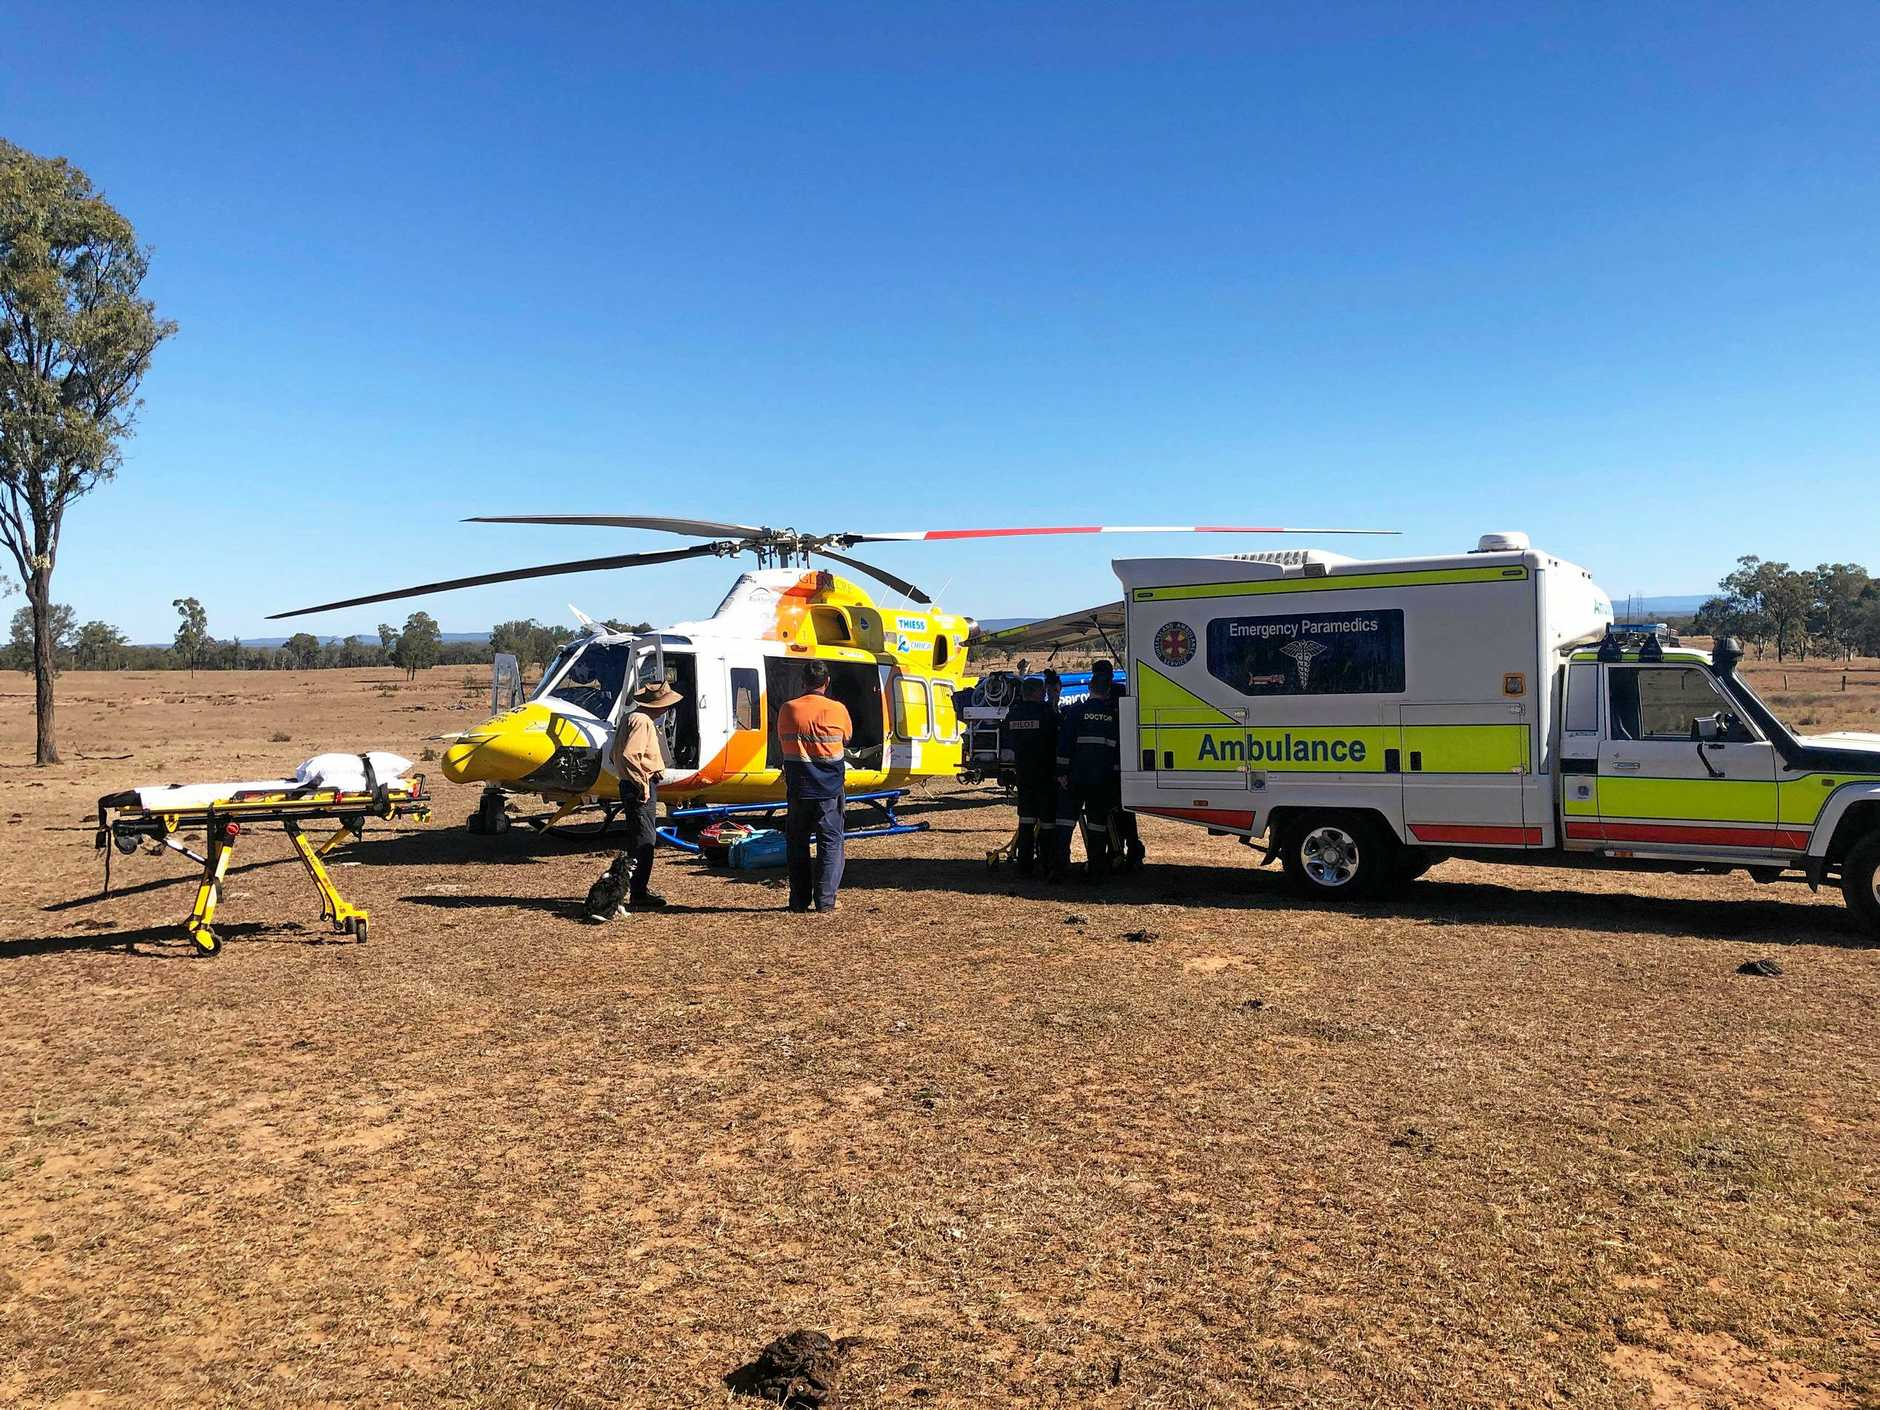 RACQ Capricorn Helicopter Rescue Service transported an 84-year-old woman from a Duaringa property today after an altercation between two bulls led to her being knocked over in the cattle yards.